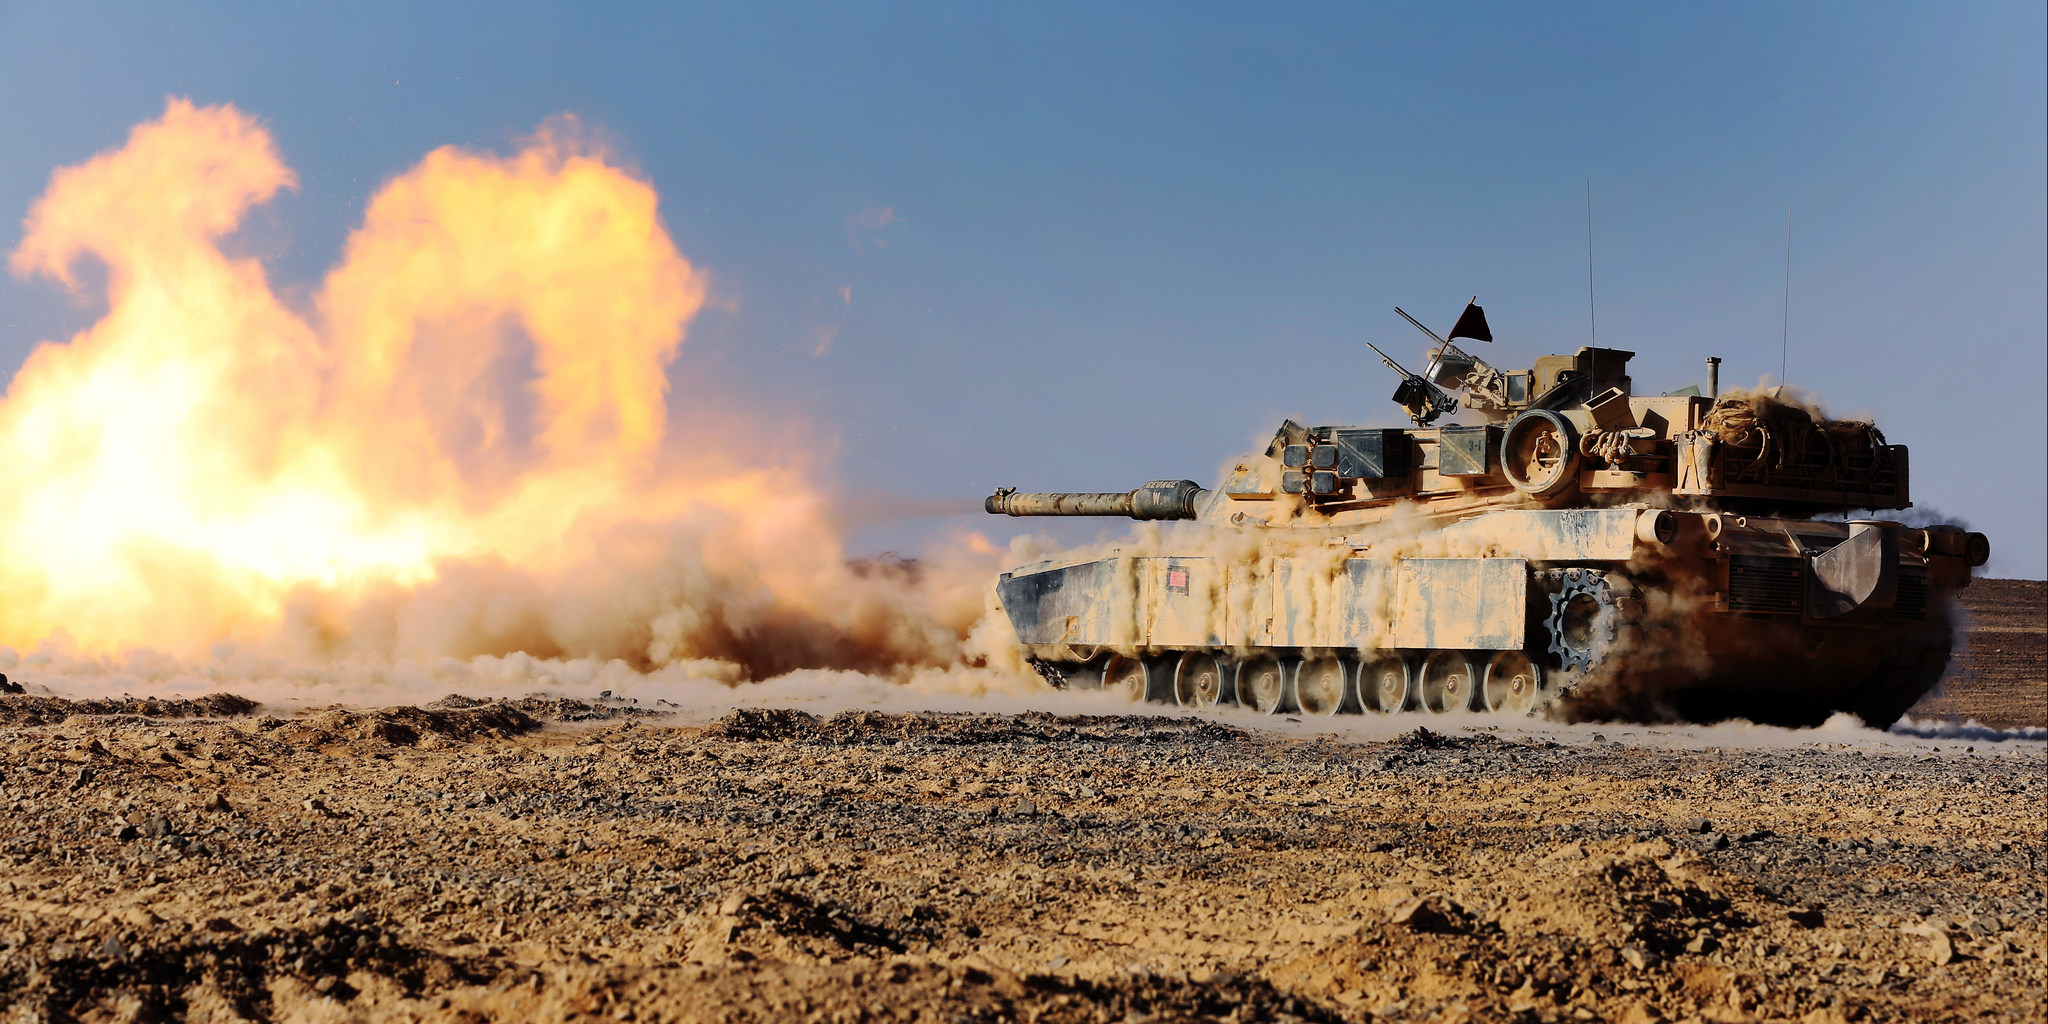 The One And Only M1 Abrams Tank